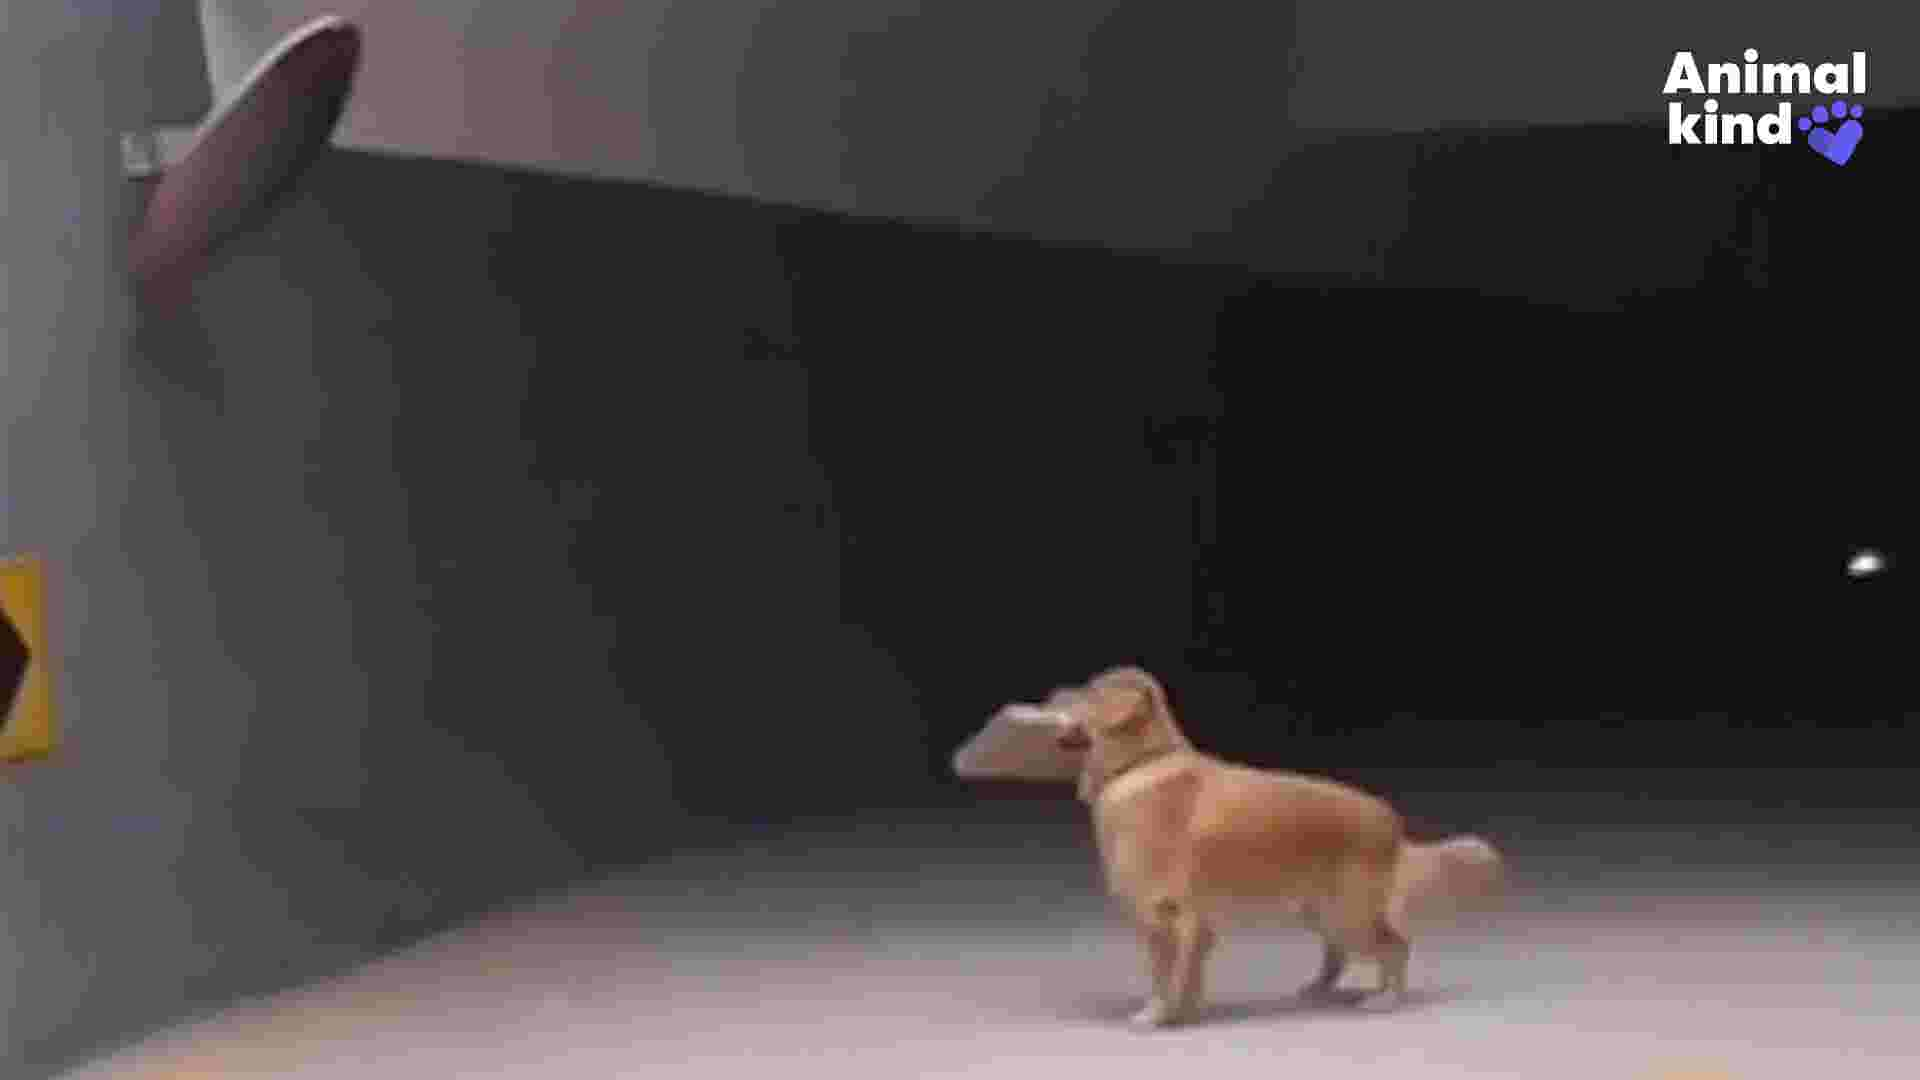 Dog sees own reflection and stops in his tracks